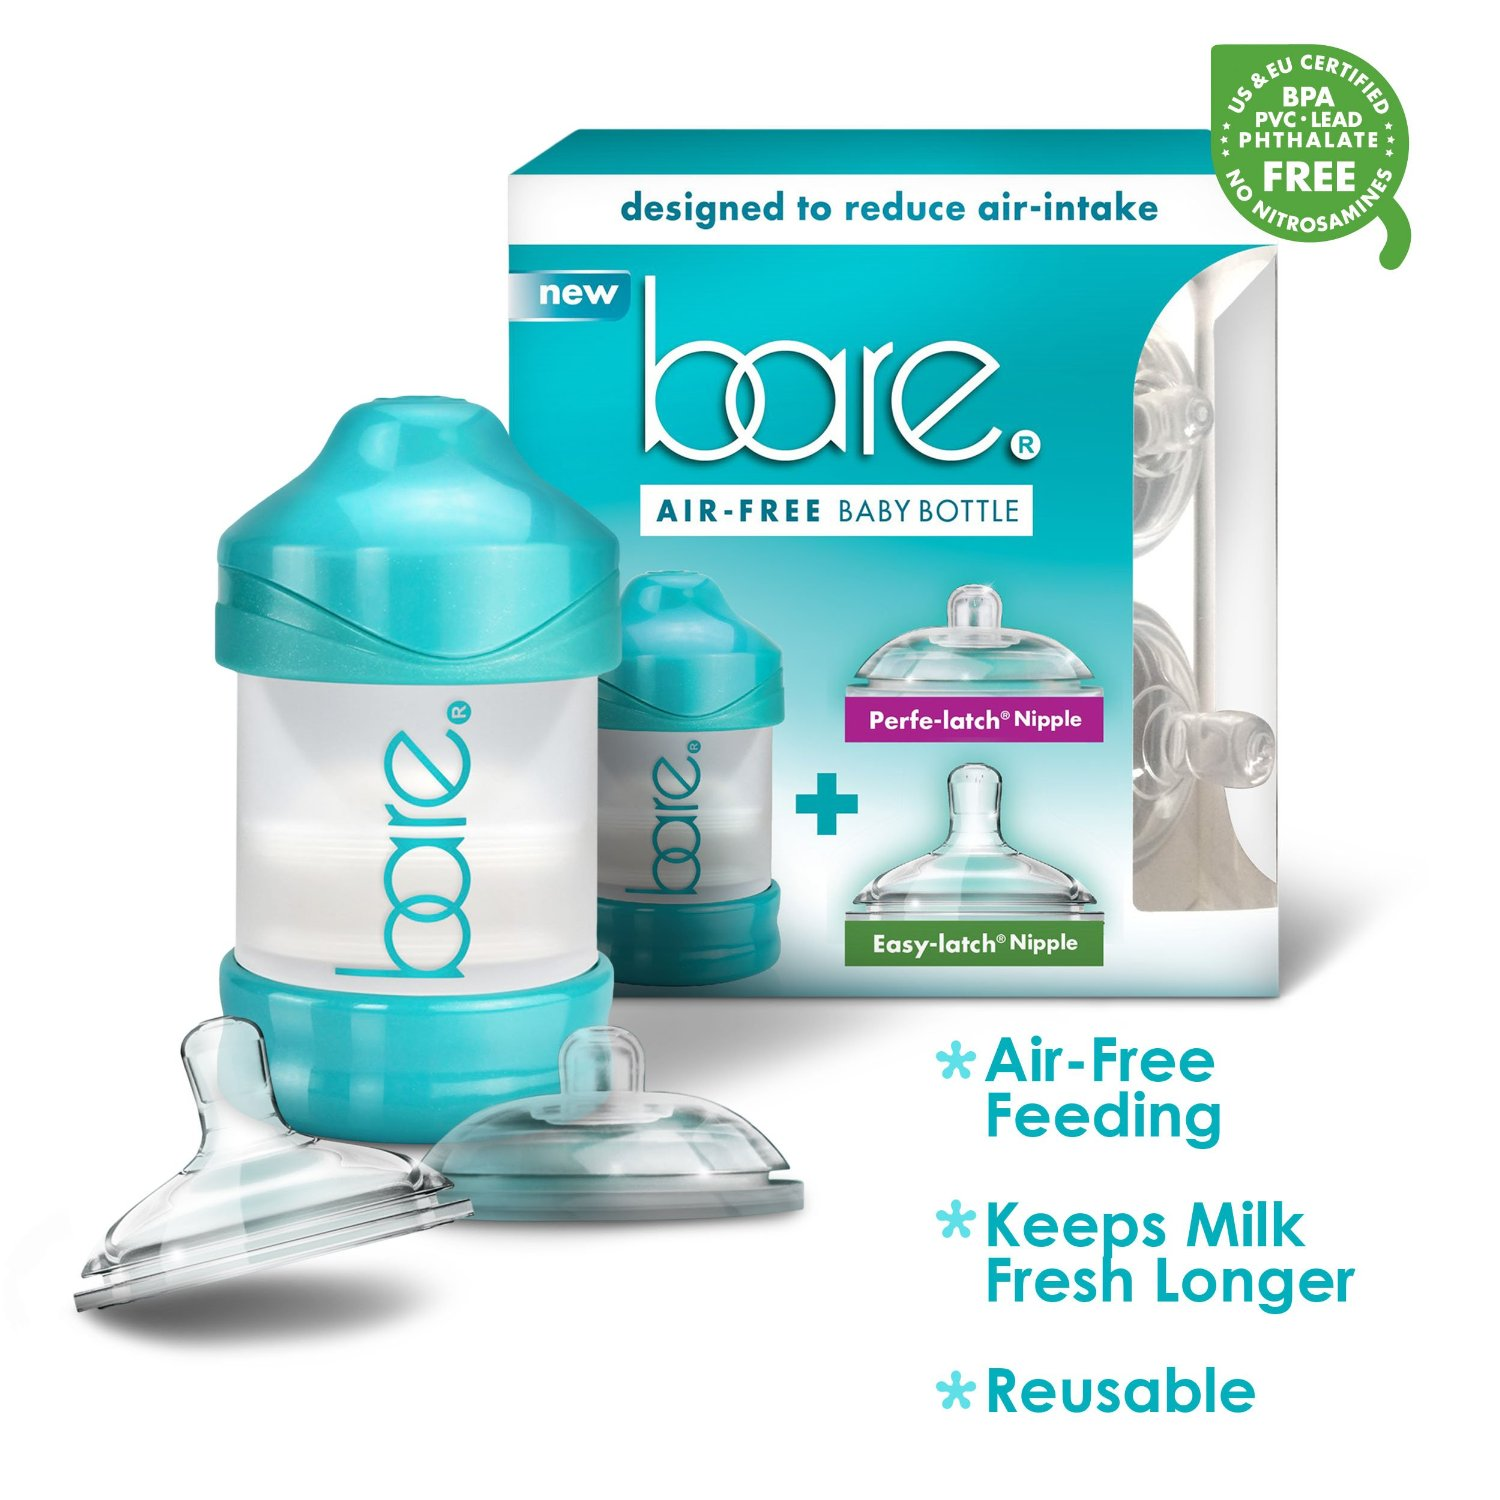 BARE Air-free 4oz Single Pack with Perfe-latch & Easy-latch Nipples, Breast-like & Air-free by BARE AIR-FREE FEEDING SYSTEM